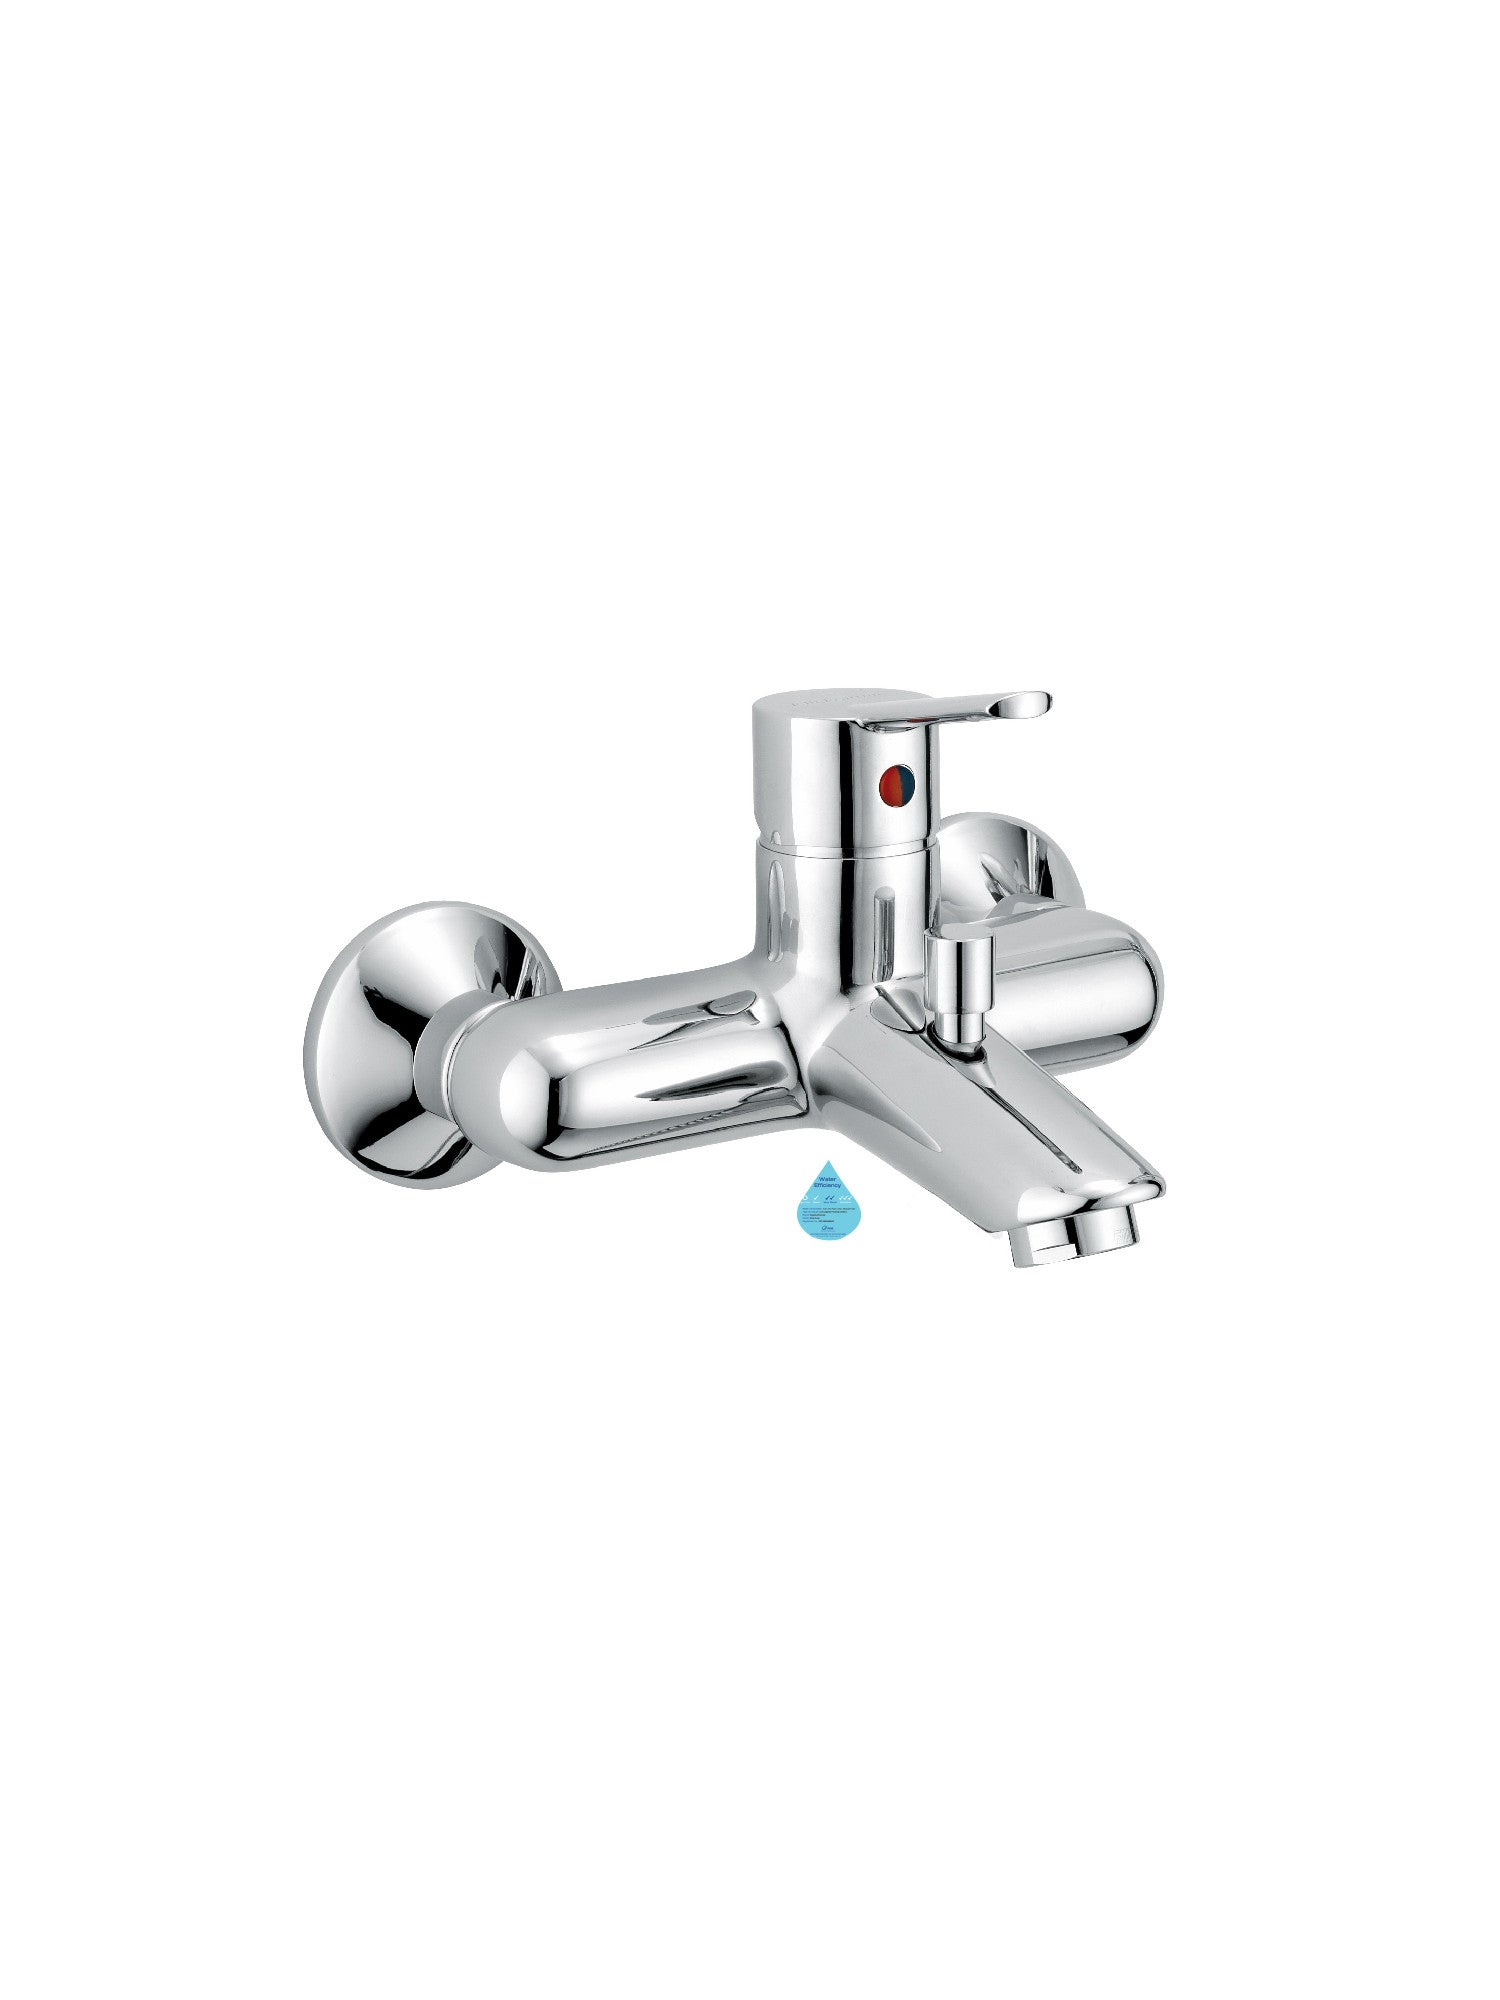 Mito Exposed Bath Mixer #81001